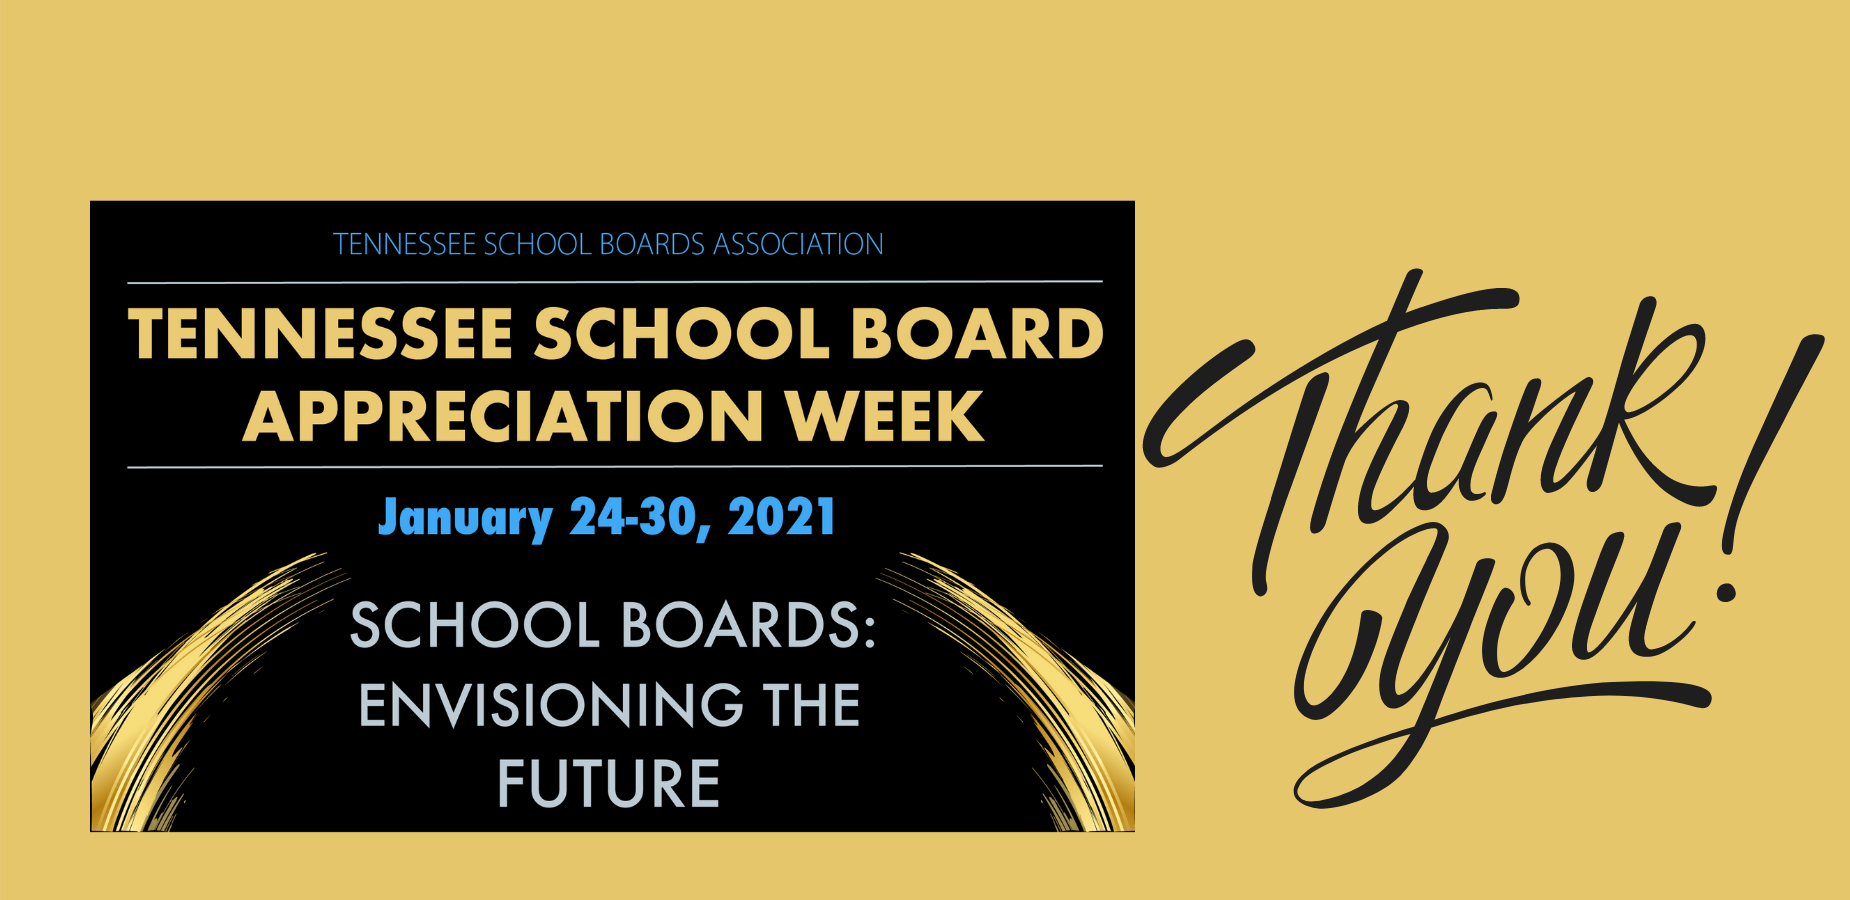 Tennessee School Board Appreciation Week